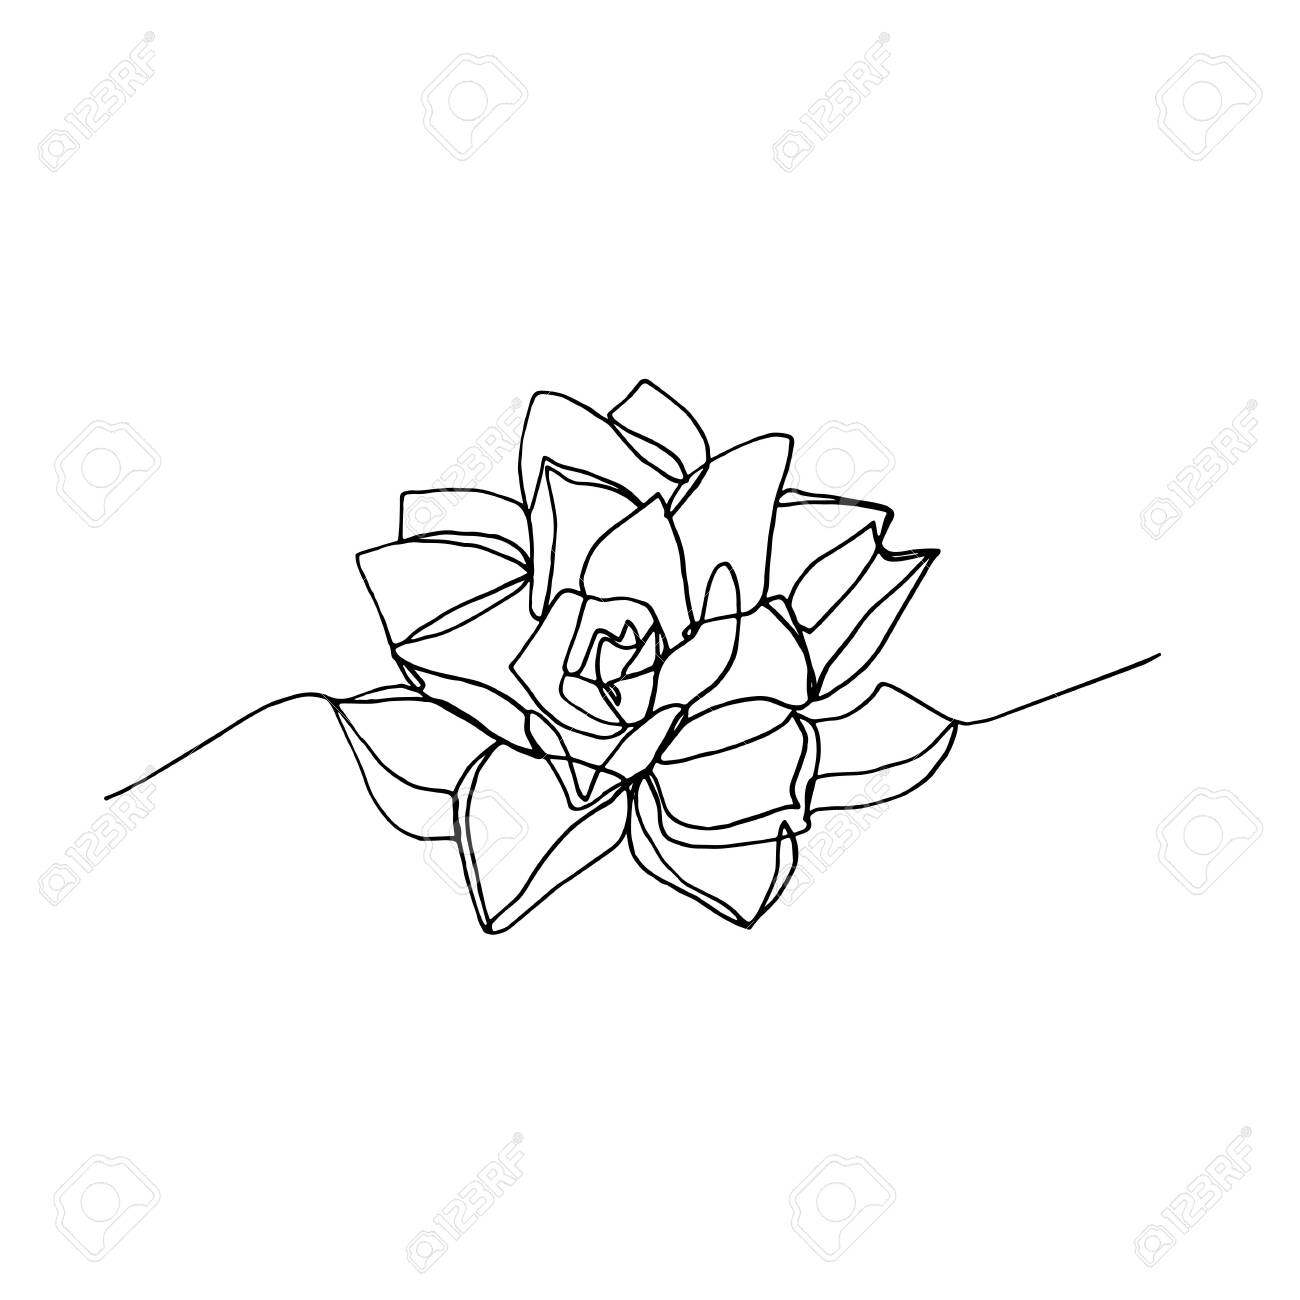 Hand Drawn Minimalistic Succulent One Single Continuous Black Royalty Free Cliparts Vectors And Stock Illustration Image 123859321